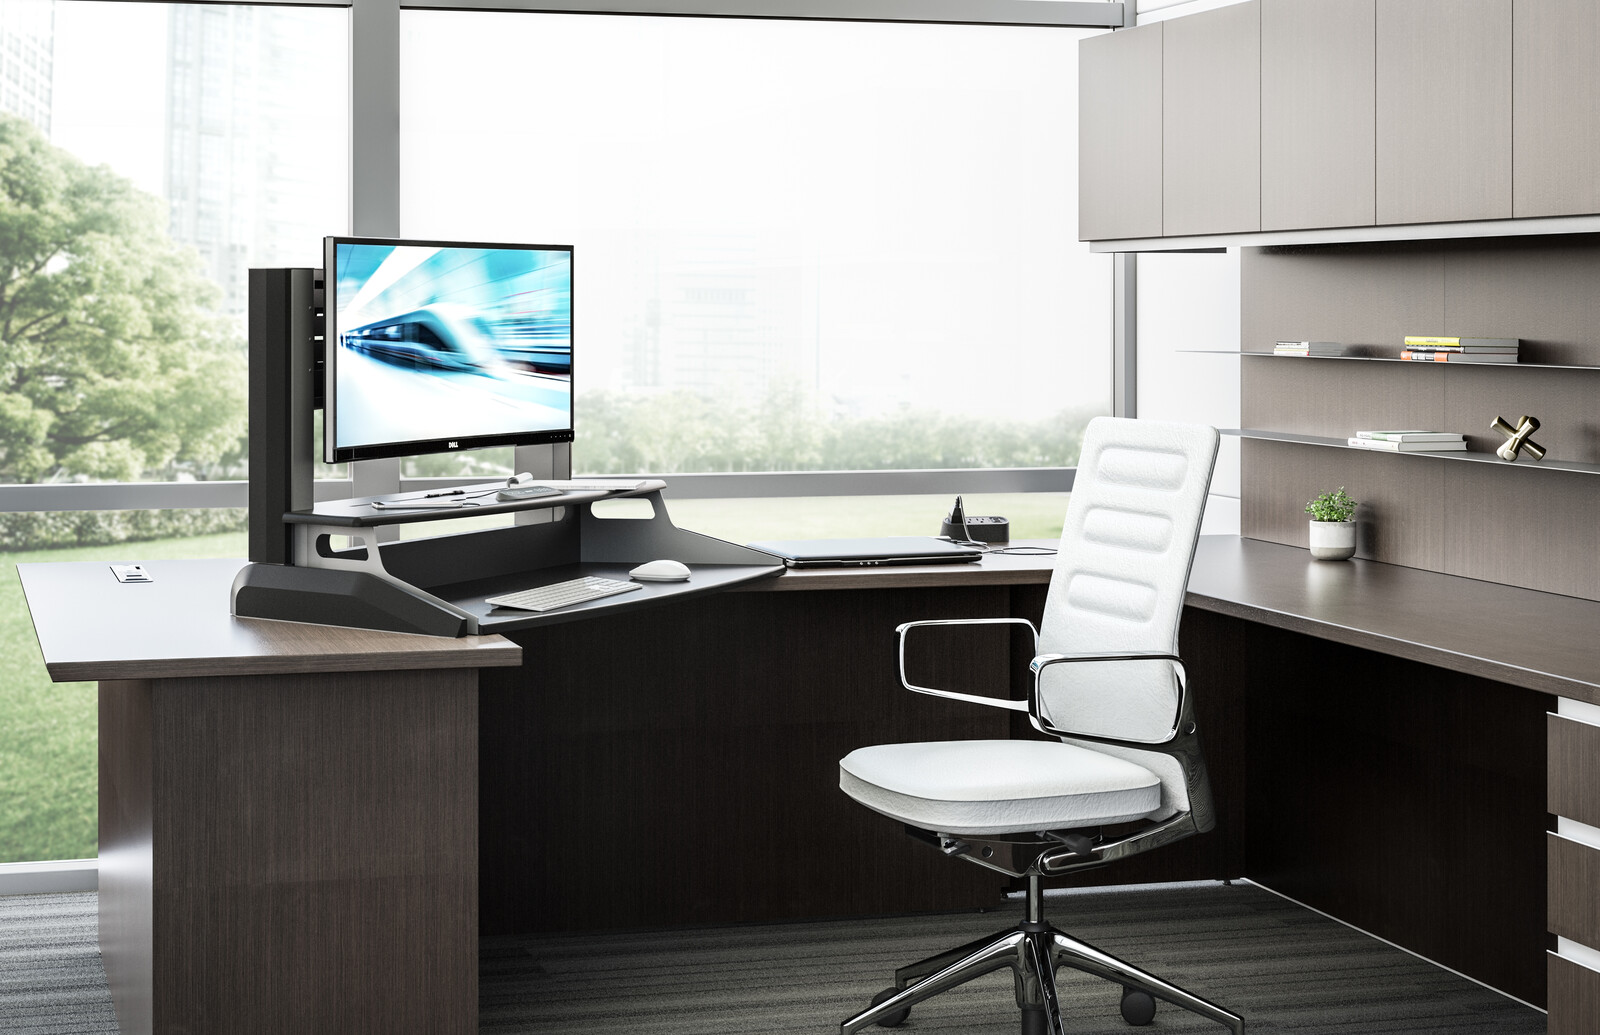 Accel Sit-to-Stand Private Office